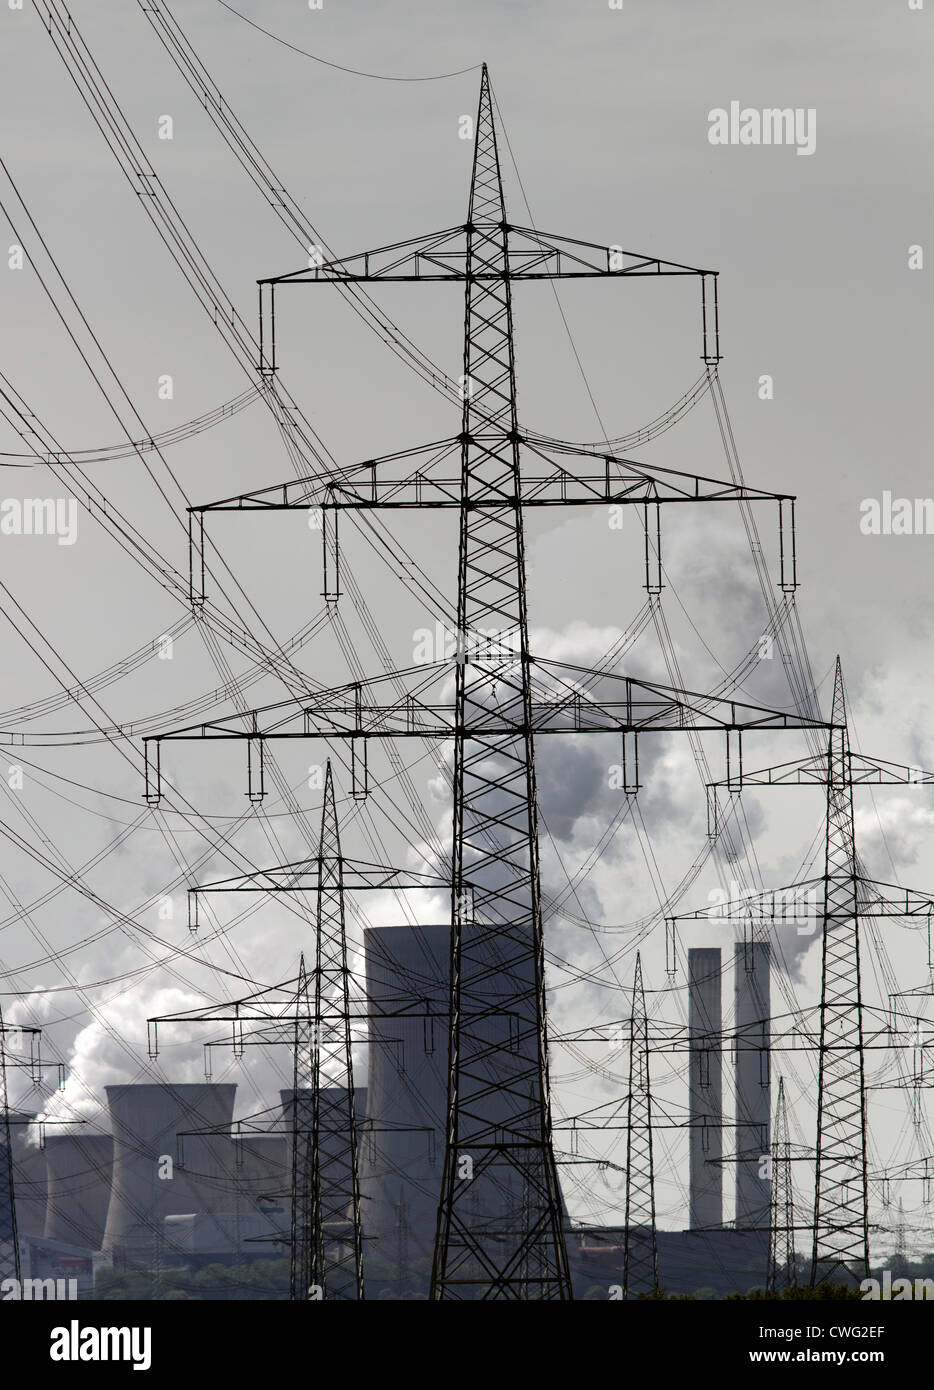 power plant and power supply - Stock Image